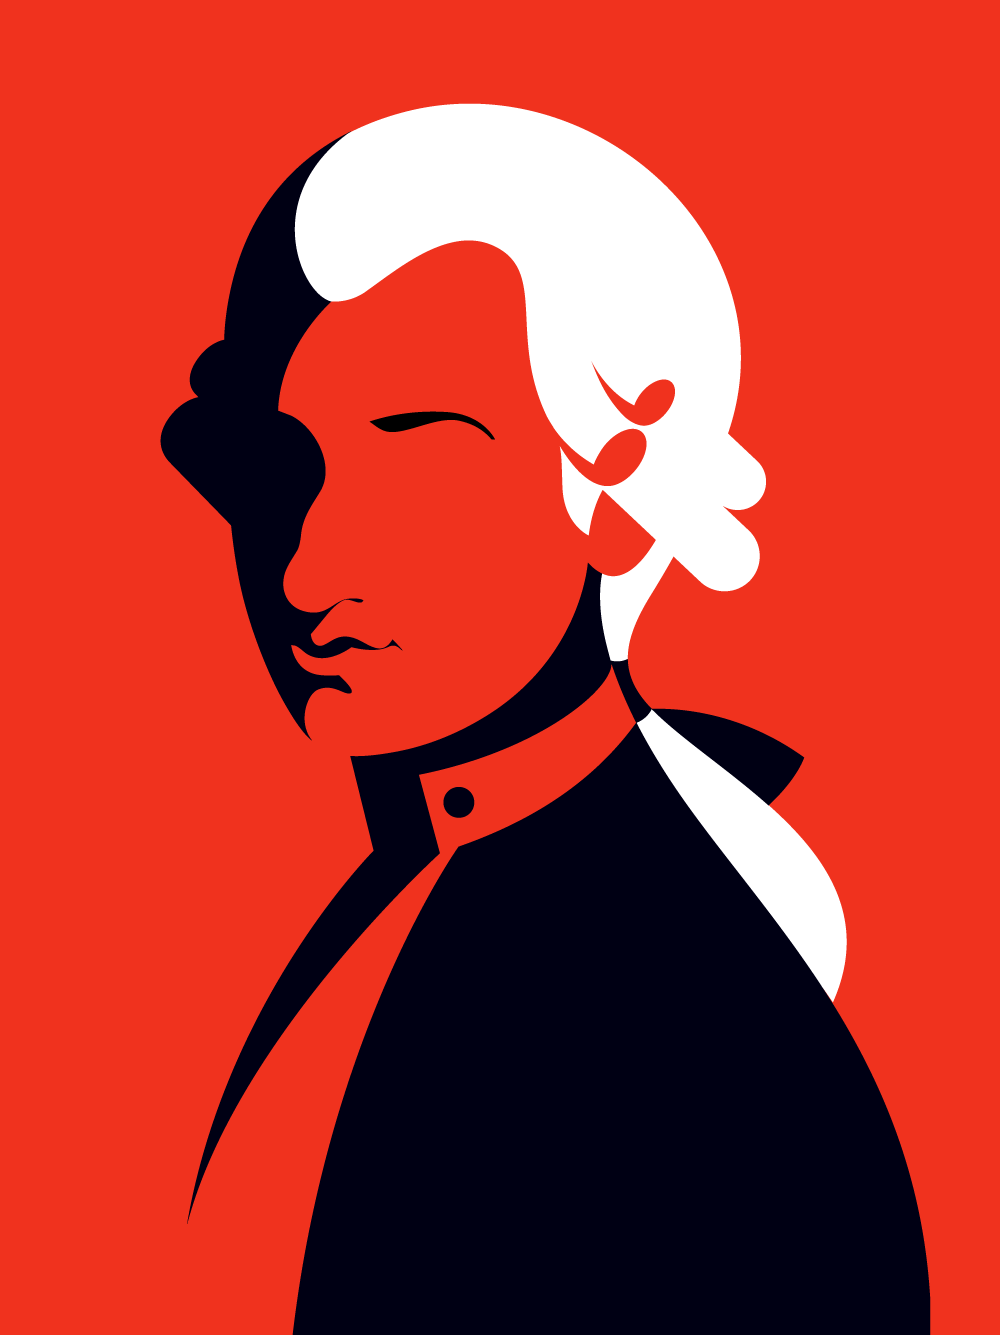 Wolfgang Amadeus Mozart portrait of a composer Austria clipart - Buy this  stock vector and explore similar vectors at Adobe Stock   Adobe Stock